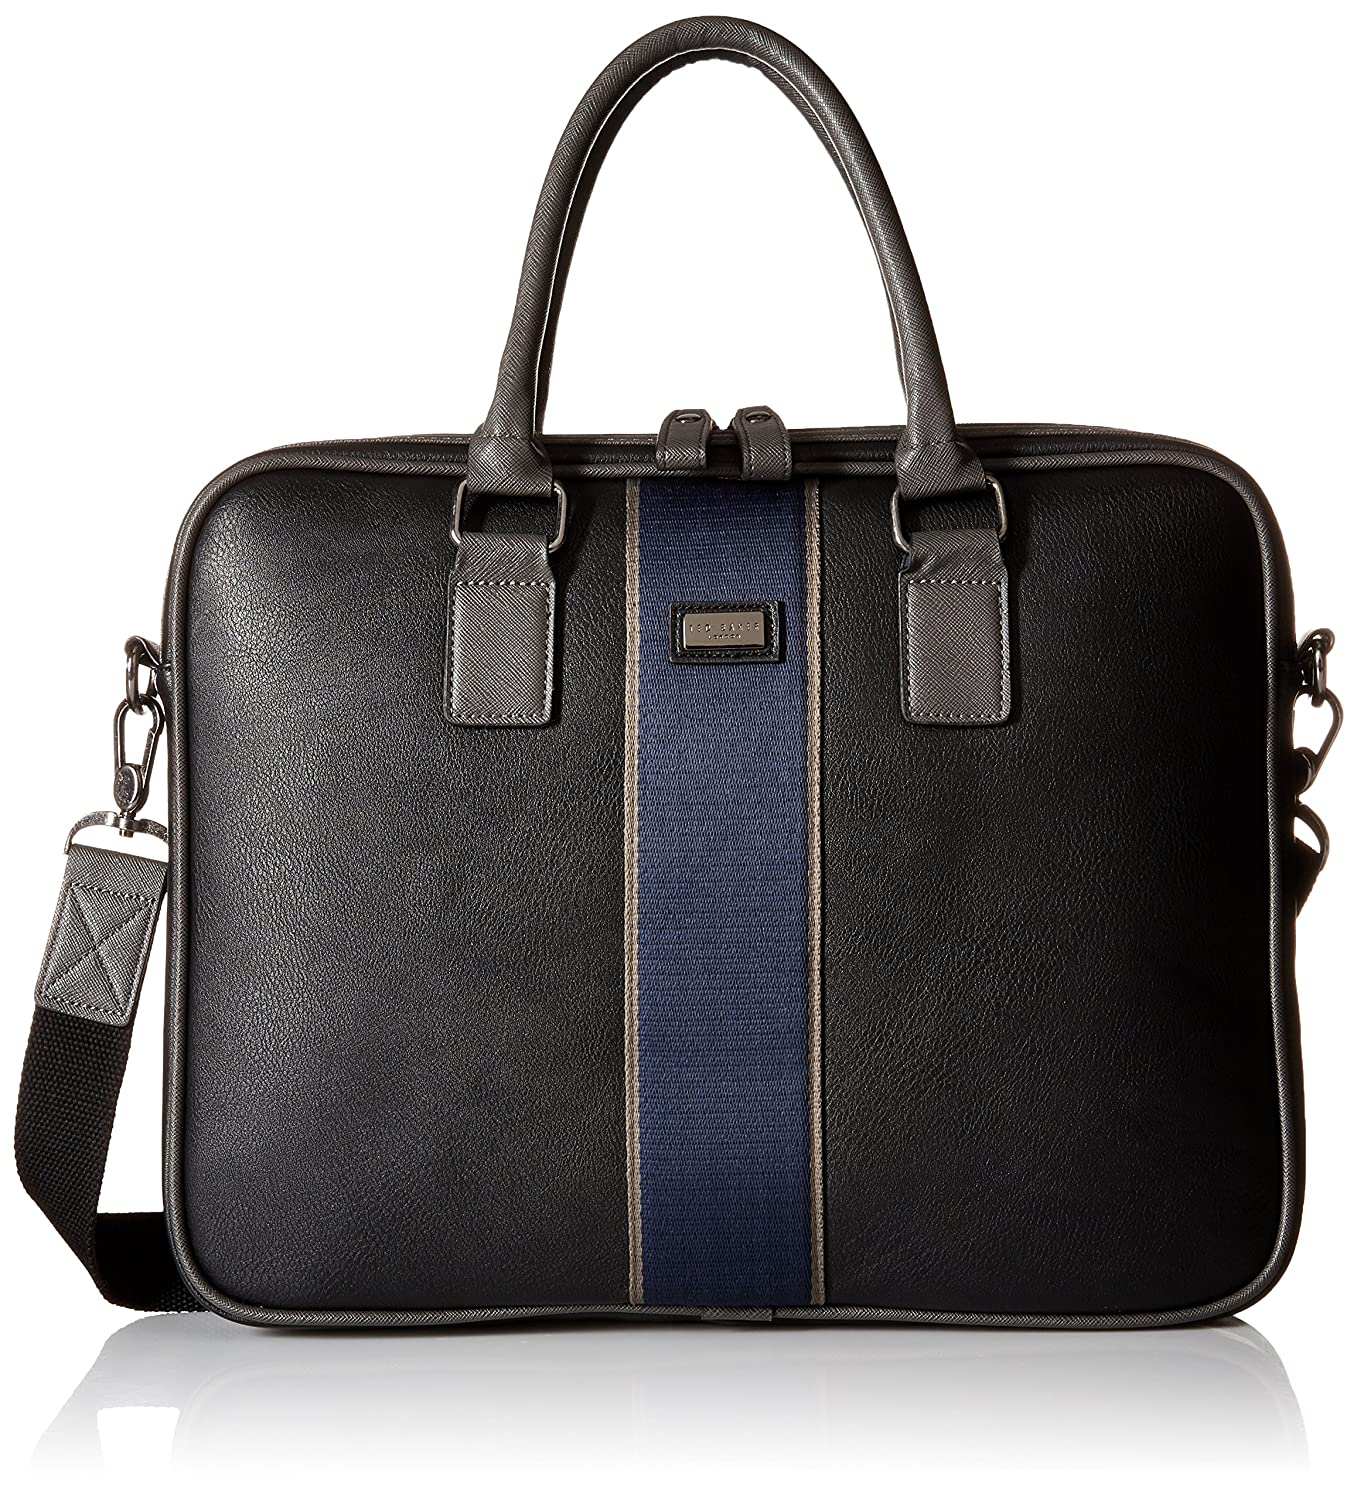 7c06f9531f6 Ted Baker Men's Striped Webbing Document Bag, Black: Amazon.co.uk: Clothing